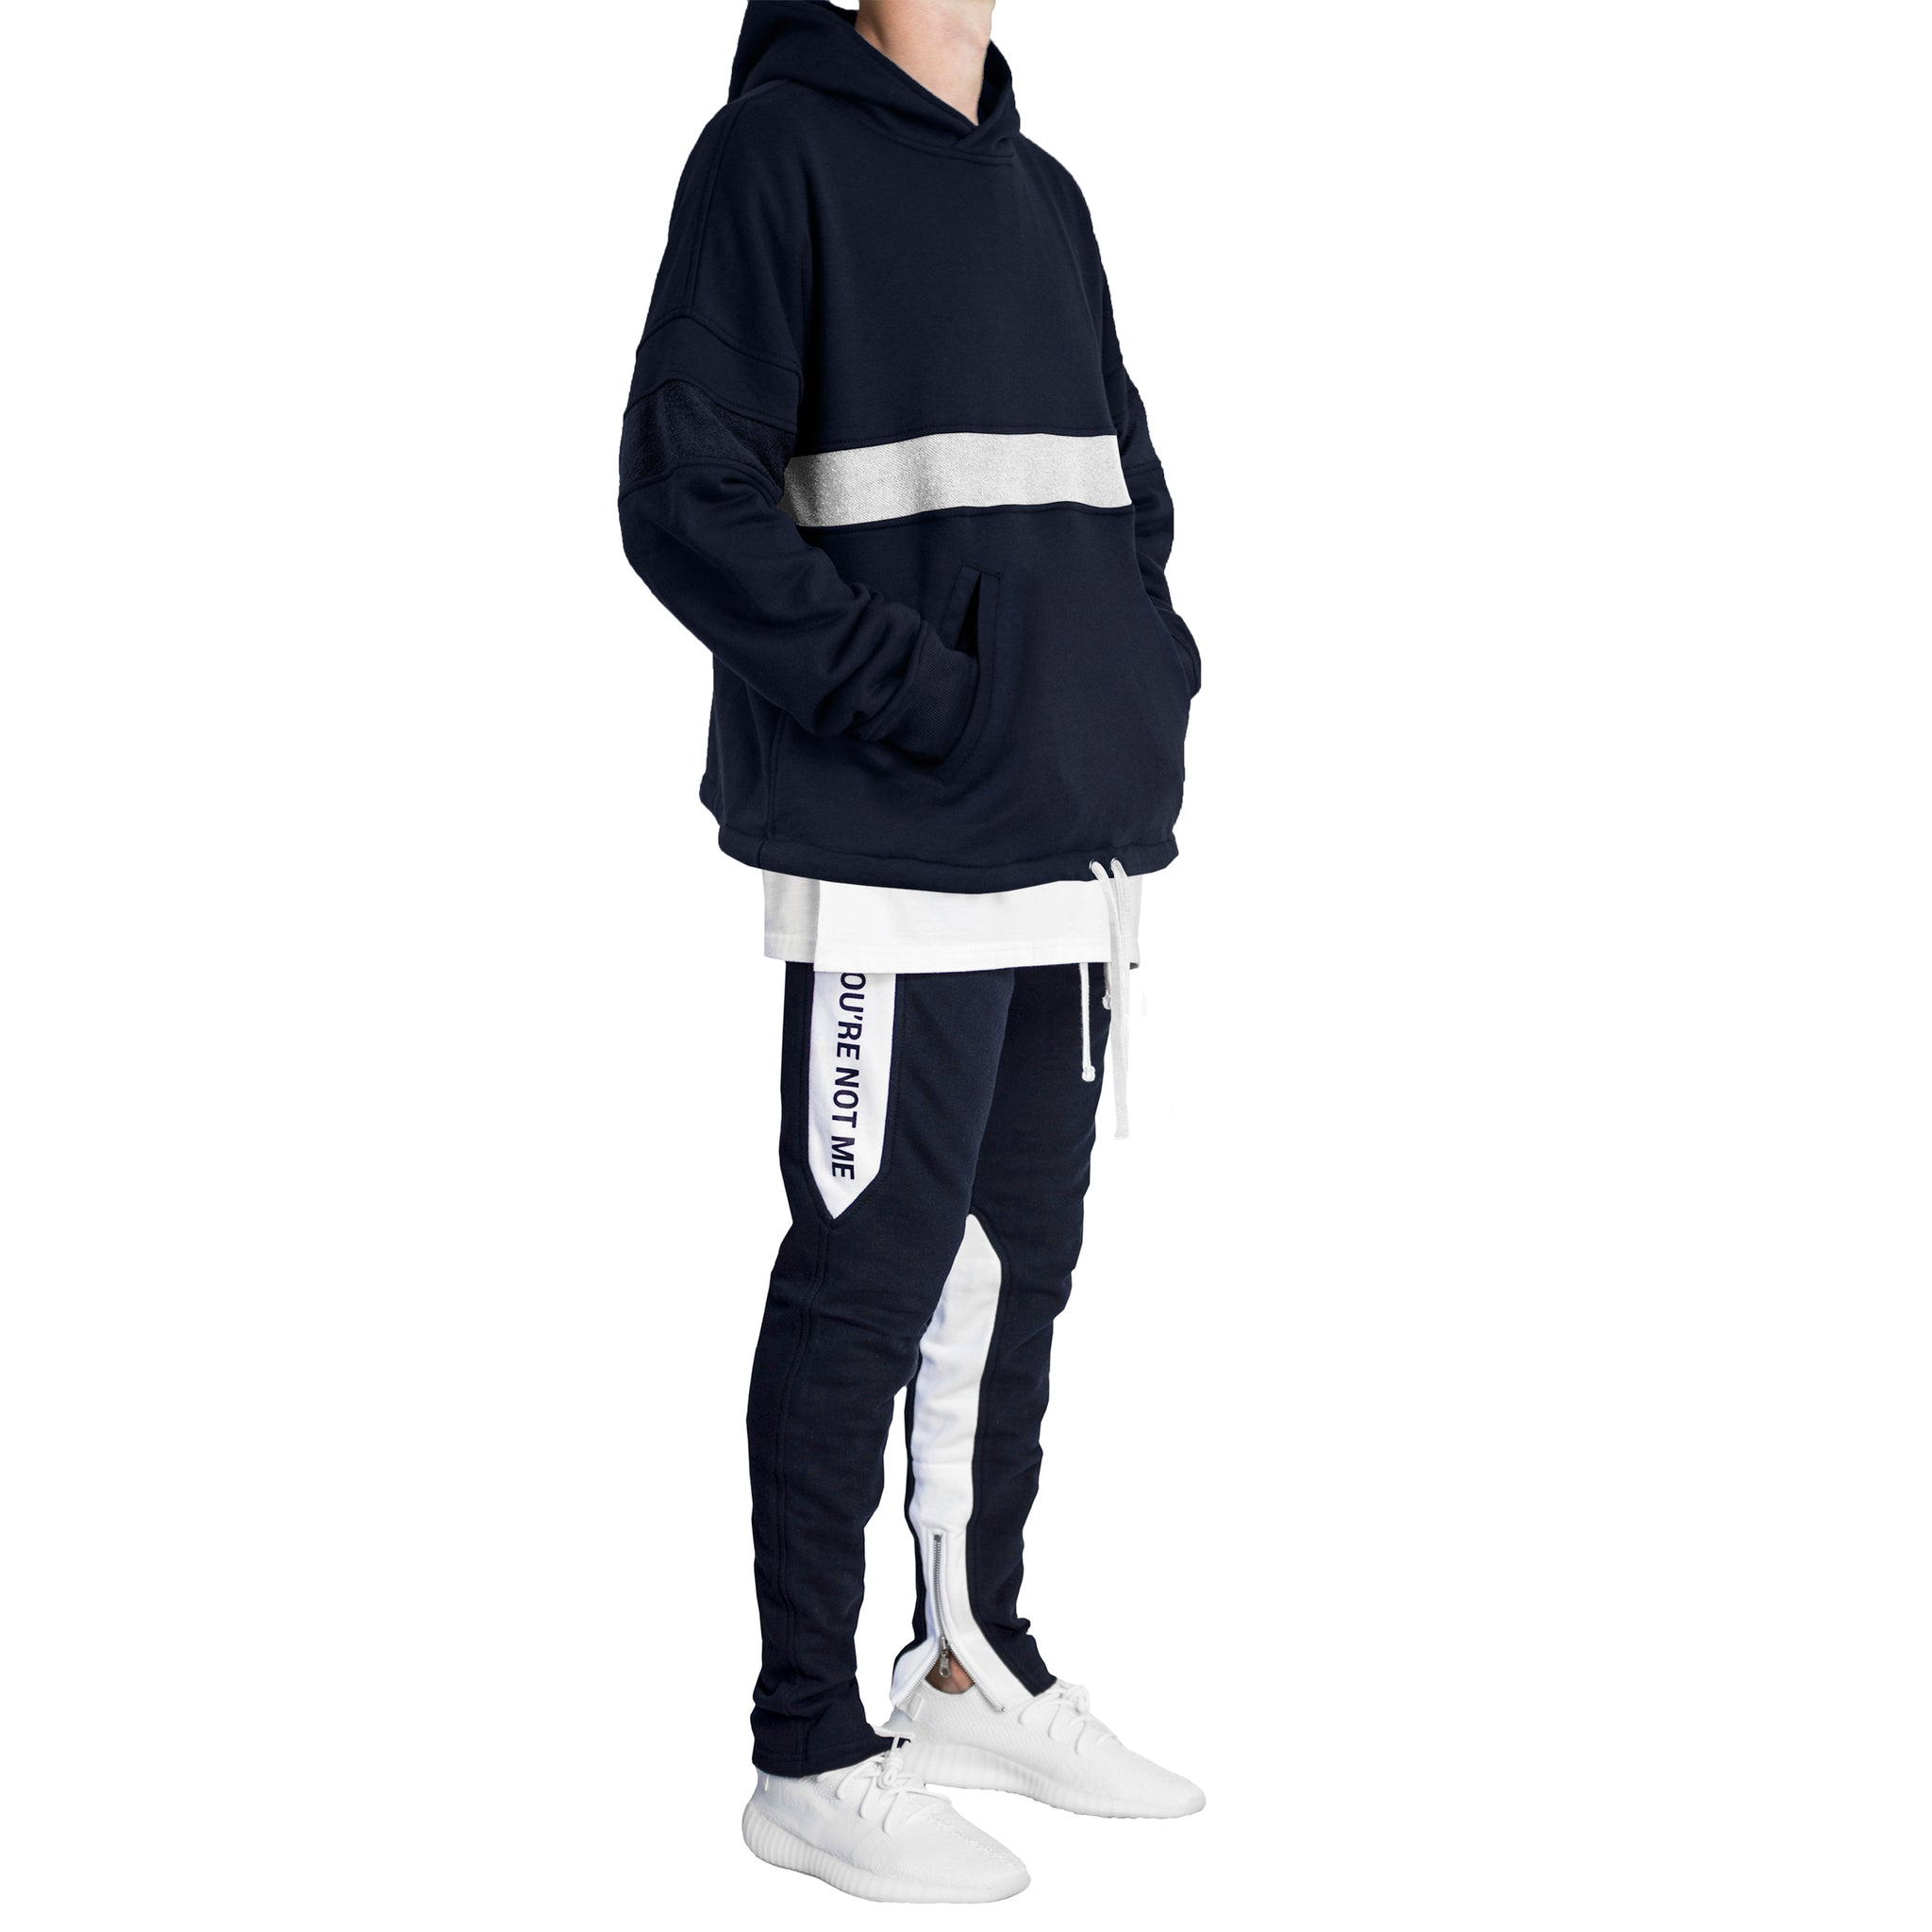 Inversion Sweatsuit : Navy/White